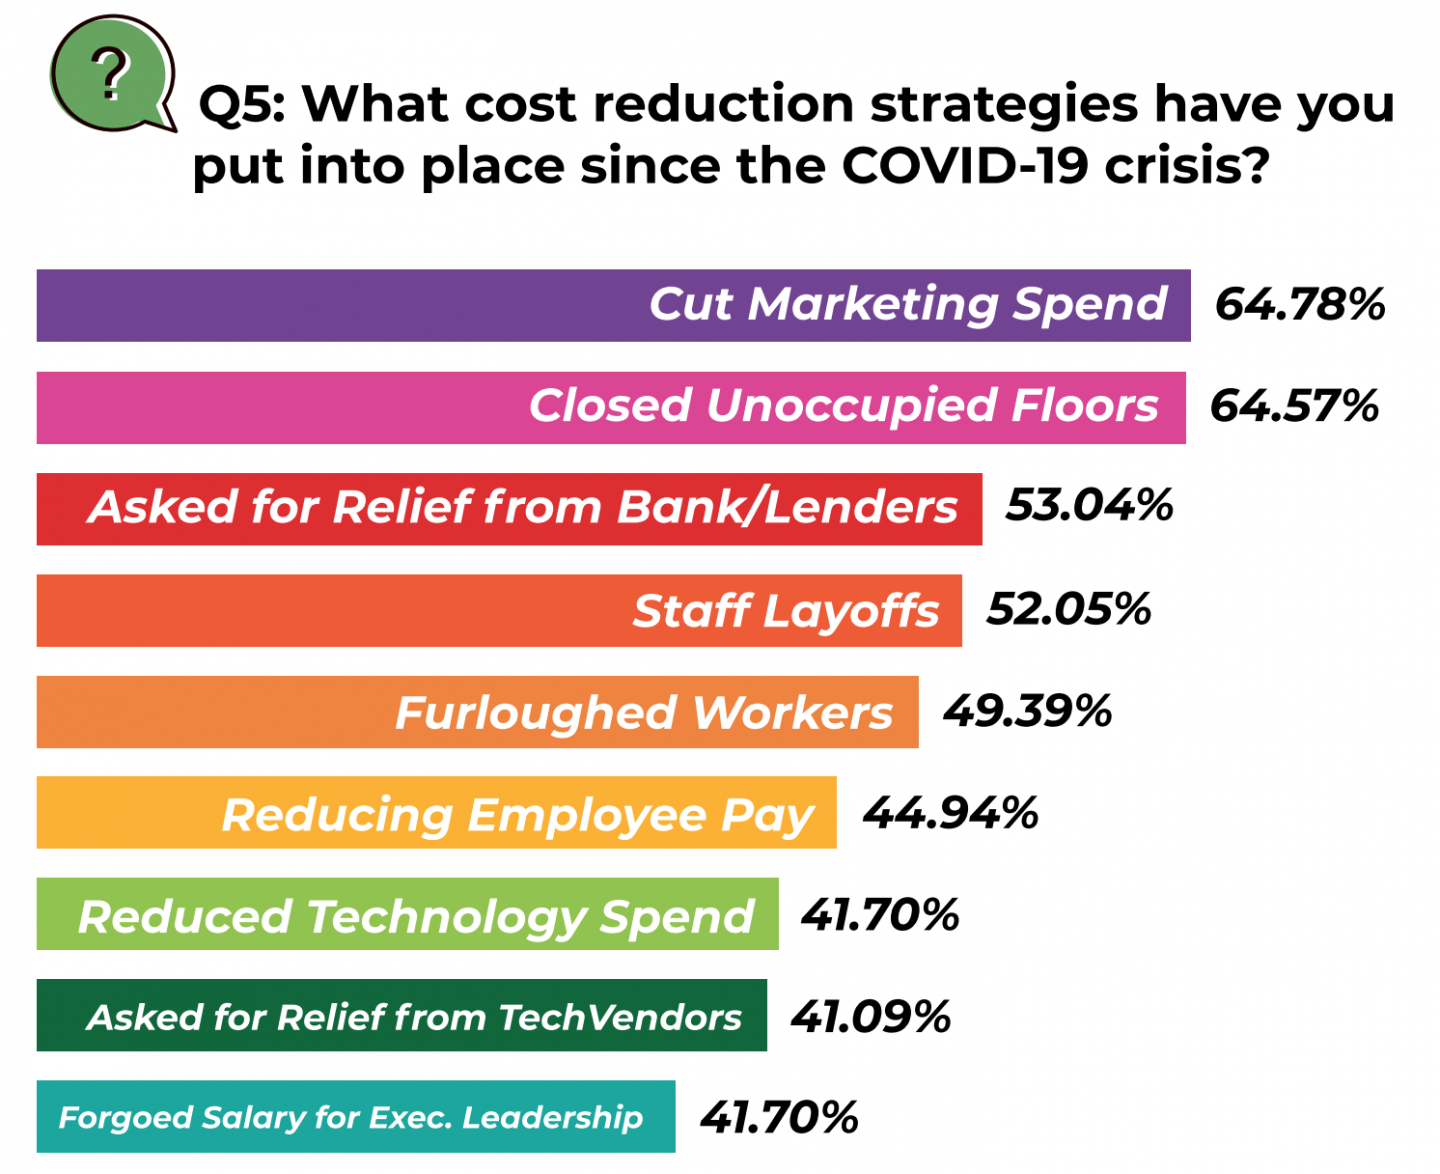 Cost reduction strategies 2020